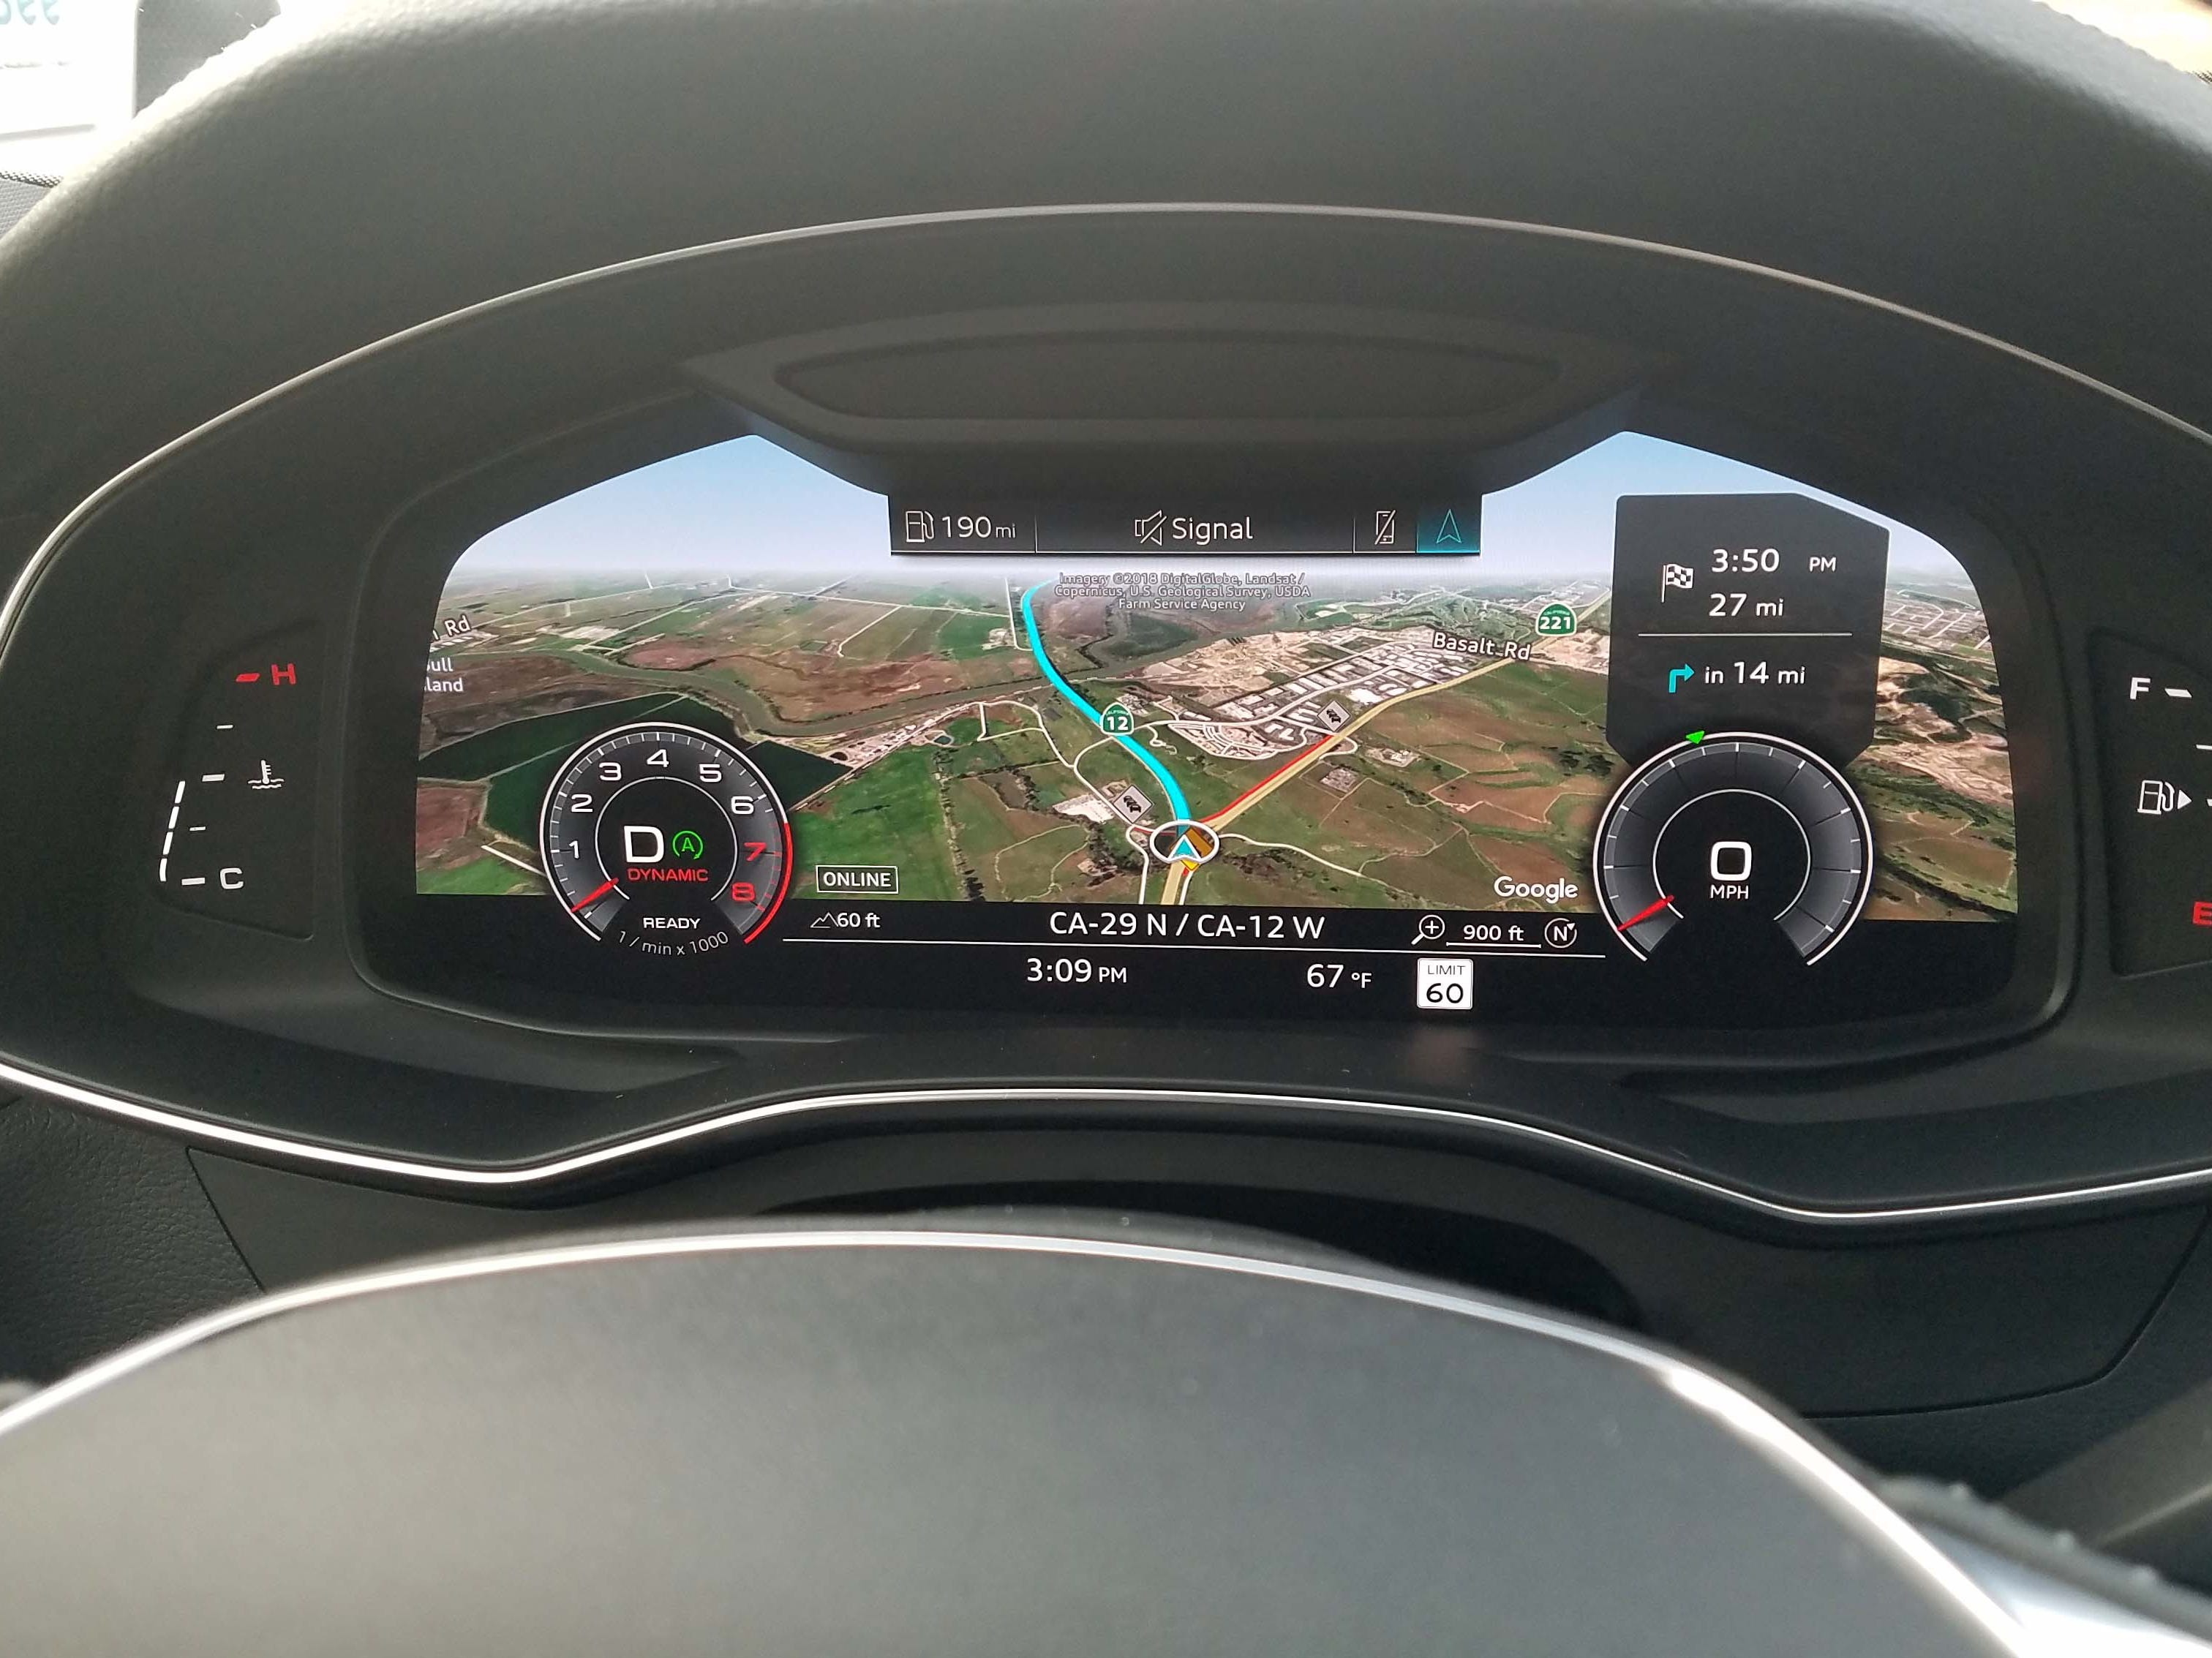 An Audi innovation, Virtual Cockpit uses Google Earth to bring dramatic navigation graphics while keeping the driver focused on the road ahead.